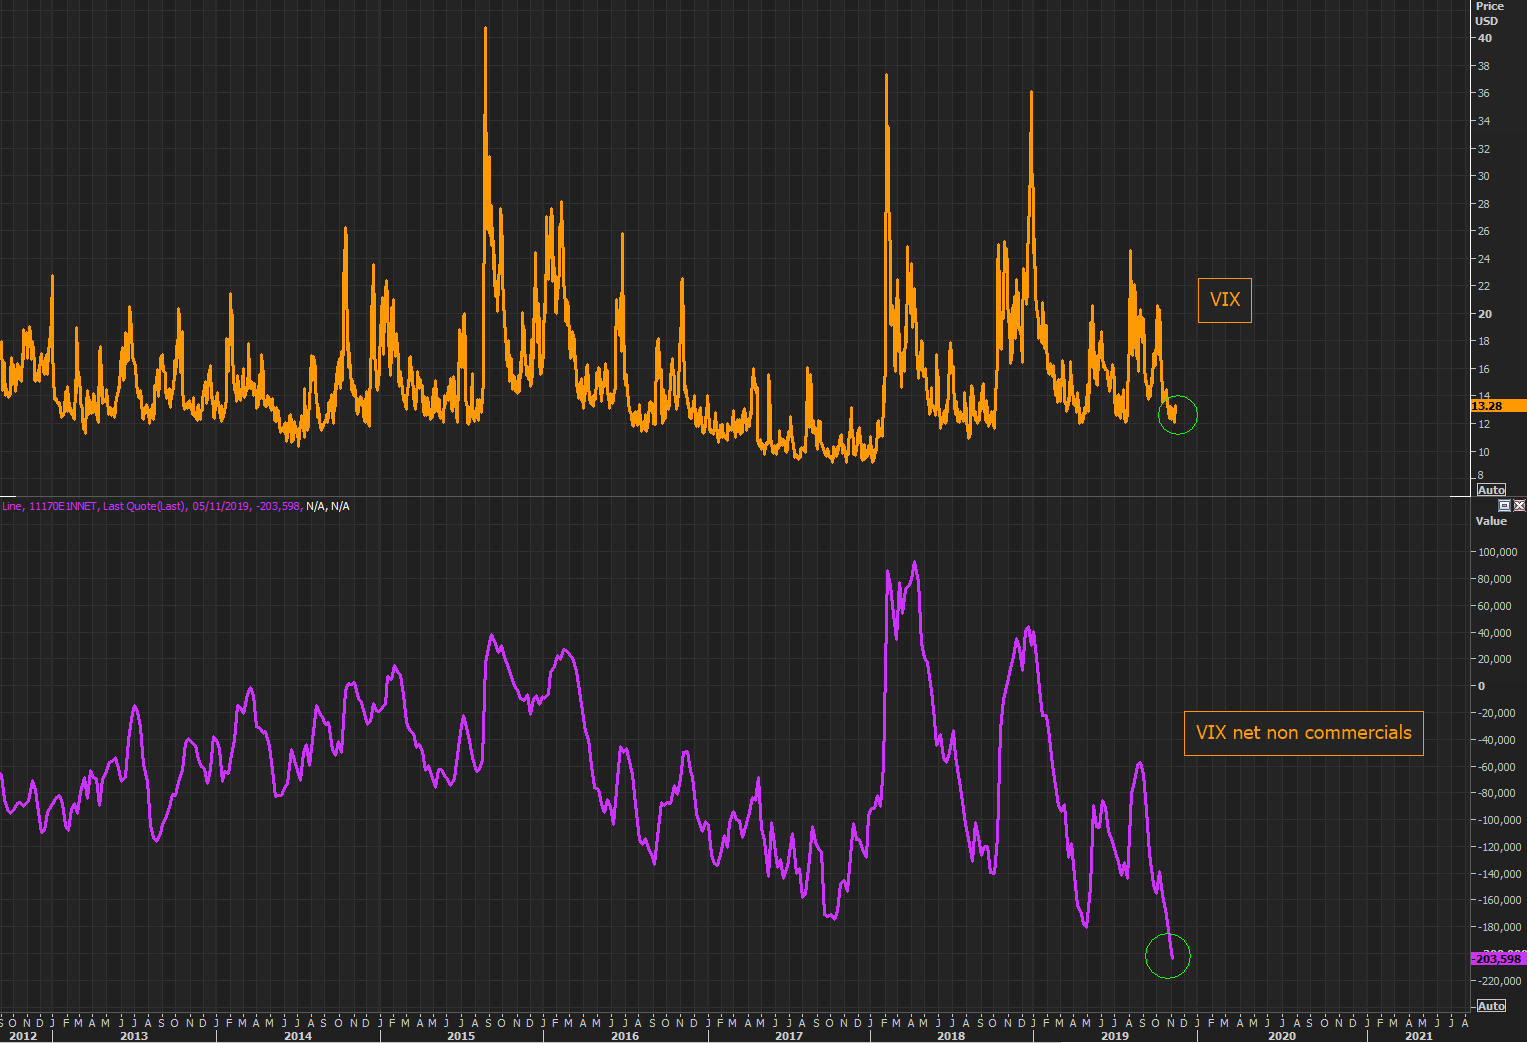 VIX - suddenly everyone is a volatility pro, pointing out the net non commercial shorts in VIX...